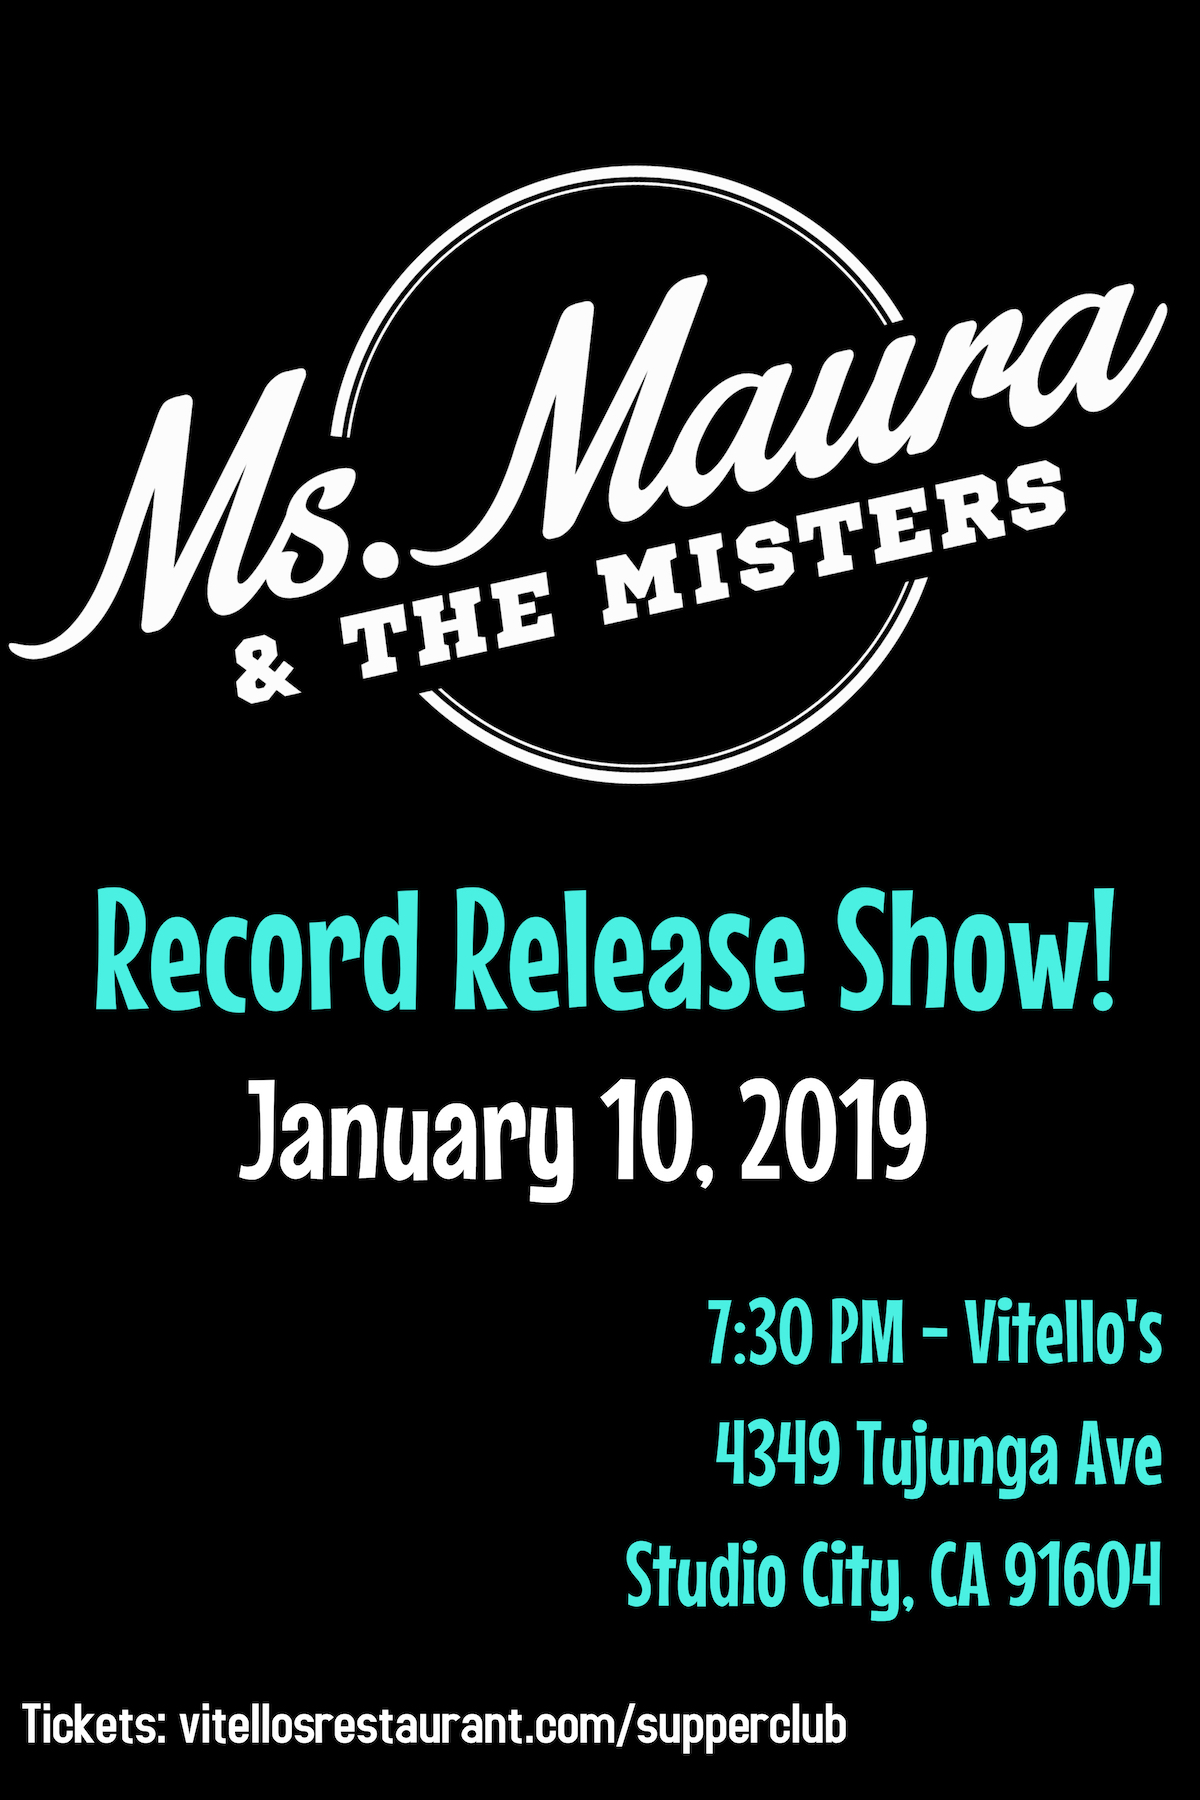 Vitellos, Ms. Maura, Ms. Maura & The Misters, Record Release, EP Release